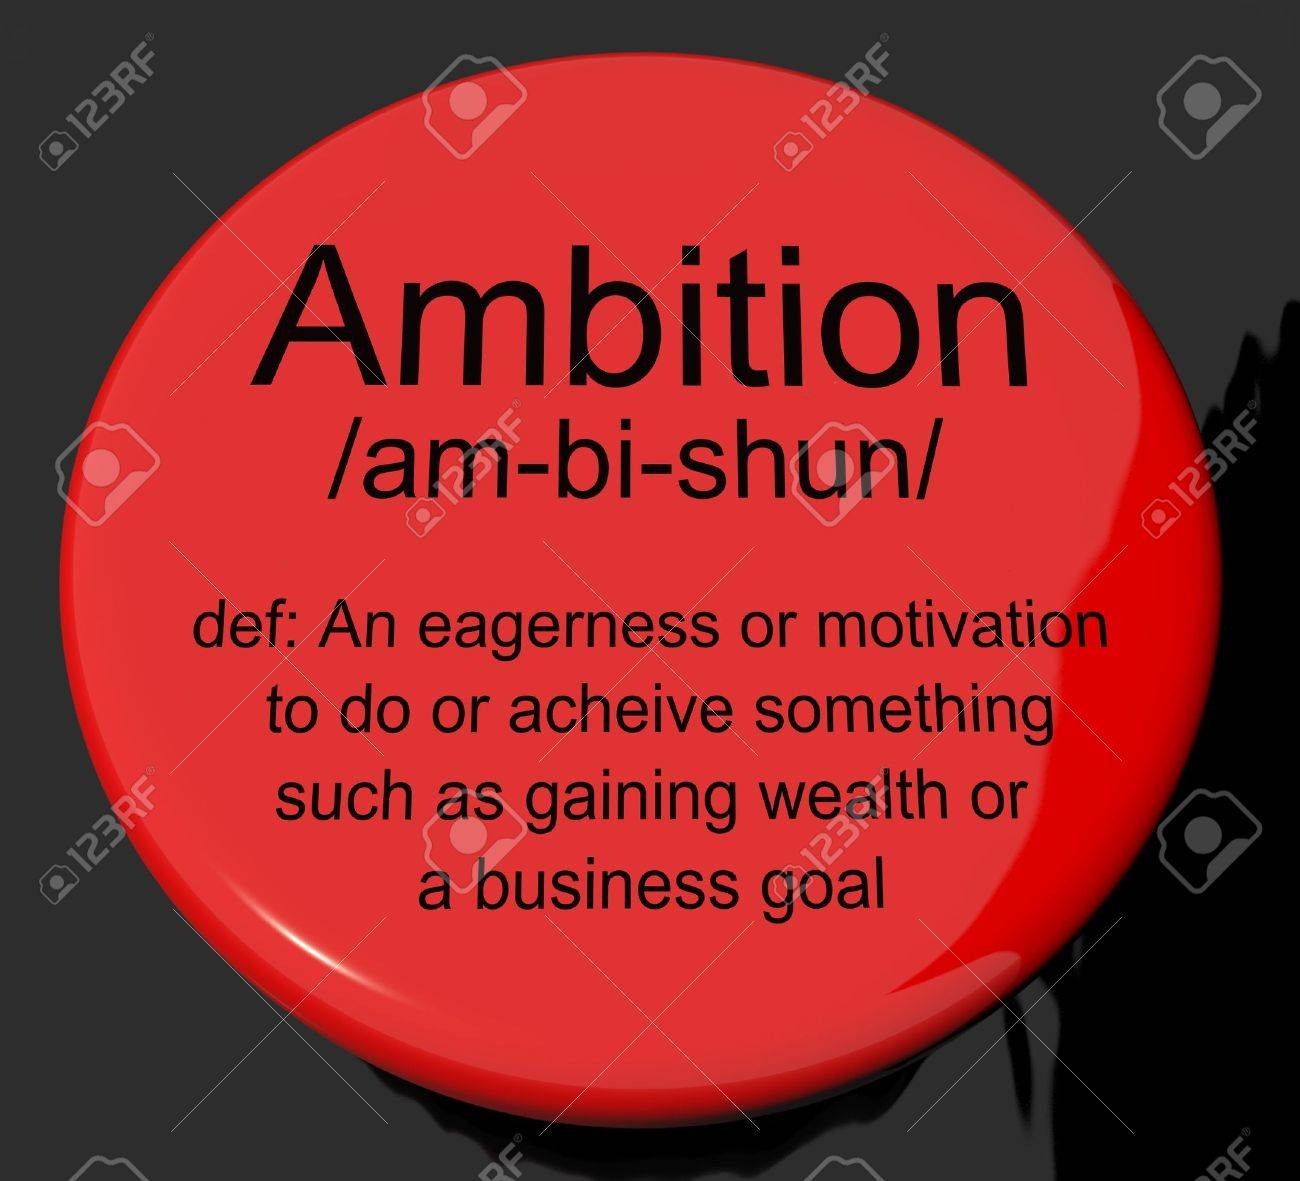 ambition definition button shows aspirations motivation and drive ambition definition button shows aspirations motivation and drive stock photo 13564305